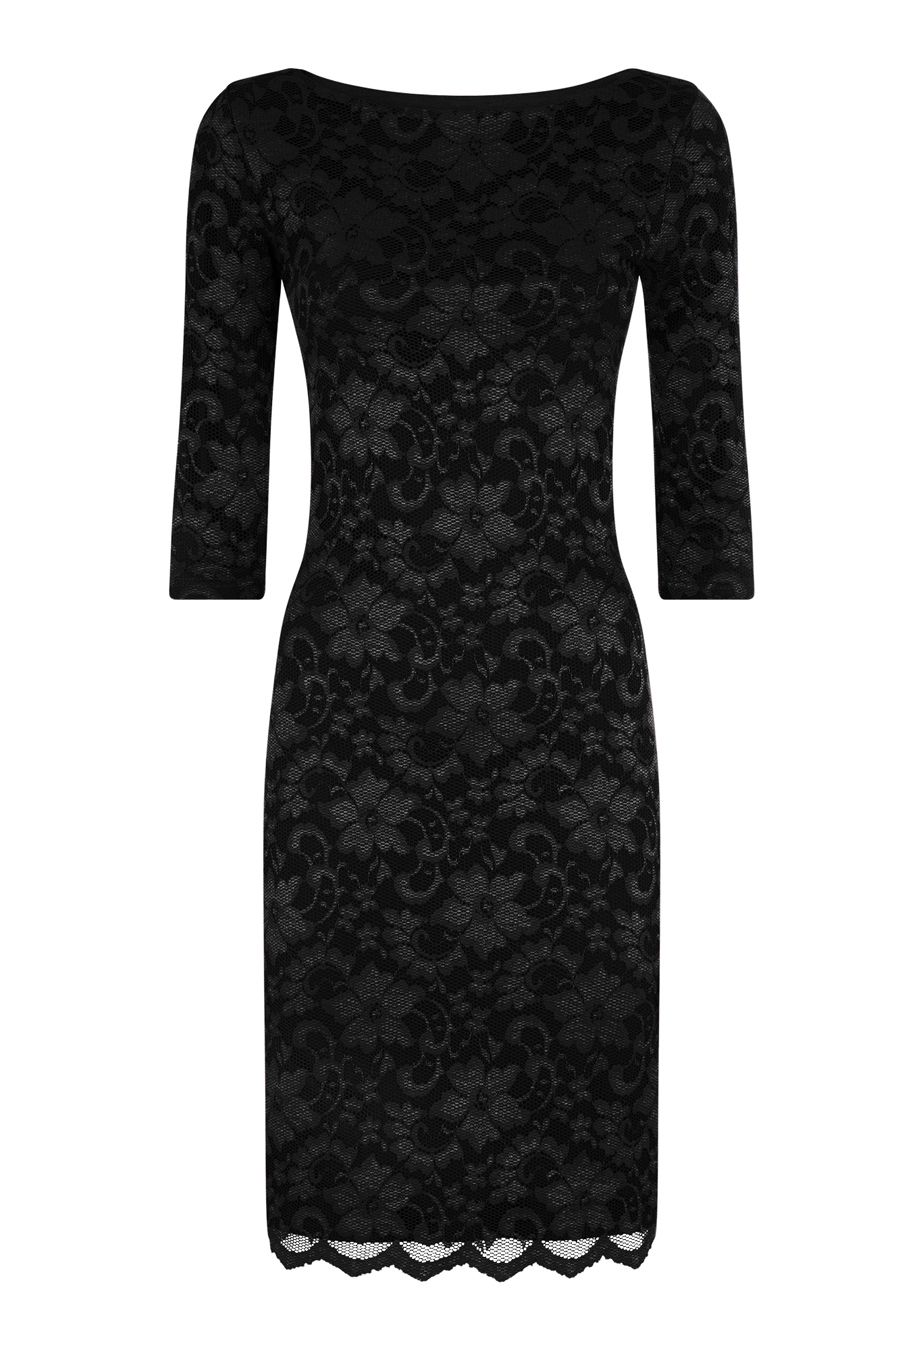 HotSquash Red long sleeved lace dress with ThinHeat, Black